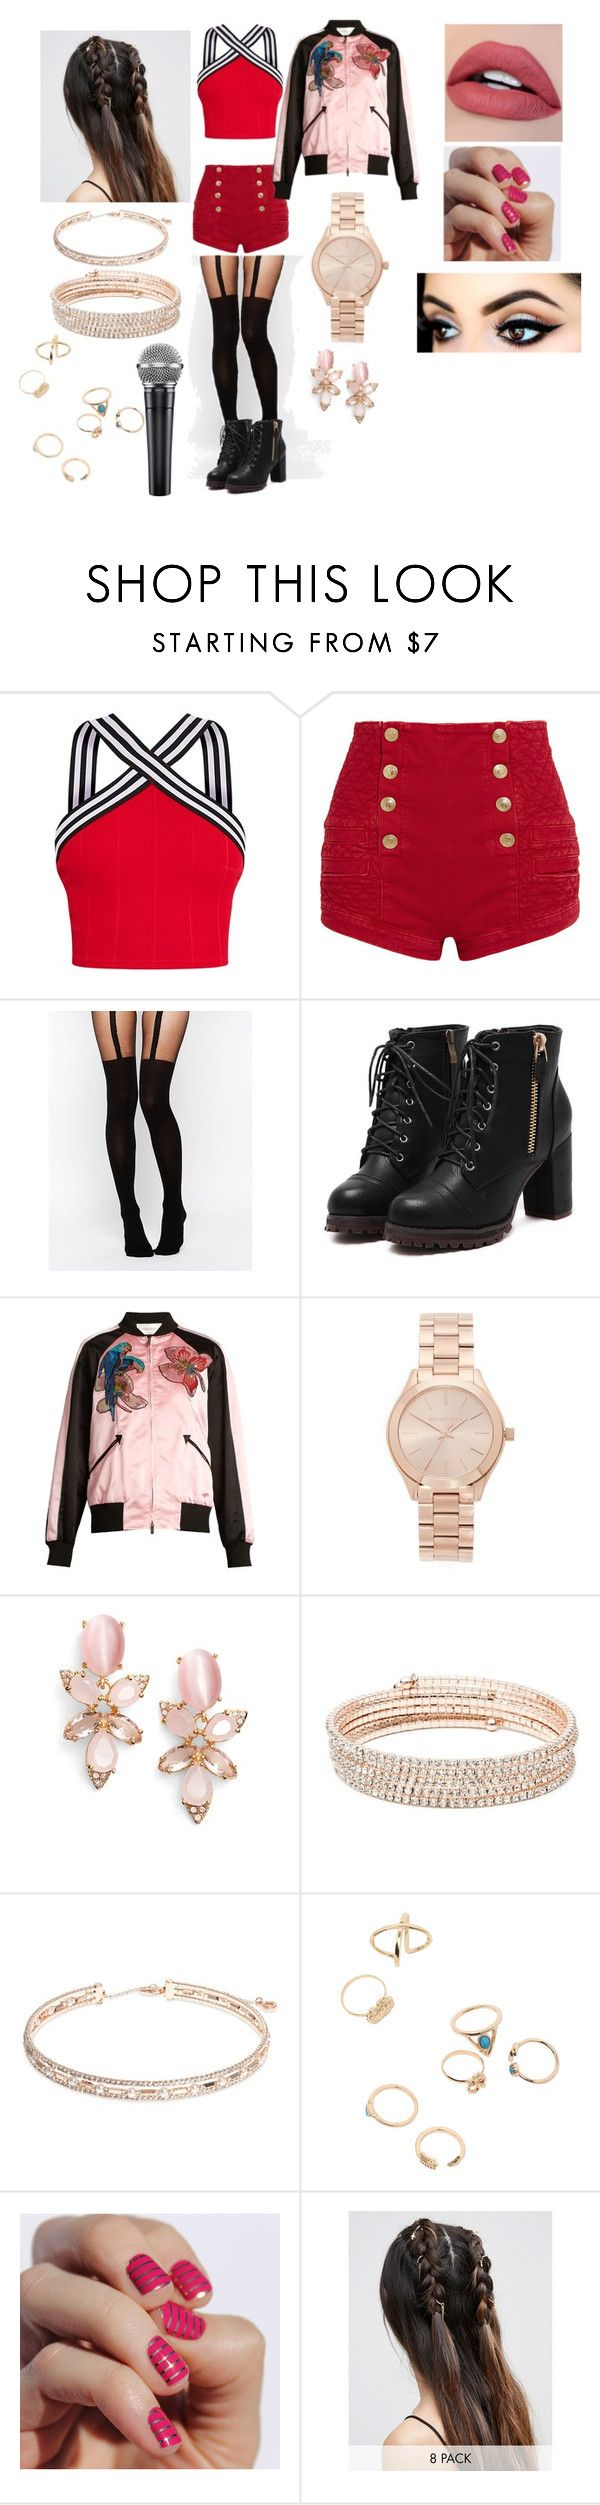 """Whistle - JENNIE OUTFIT"" by joeannamarii on Polyvore featuring Pierre Balmain, ASOS, Valentino, Michael Kors, Kate Spade, Anne Klein and SoGloss"